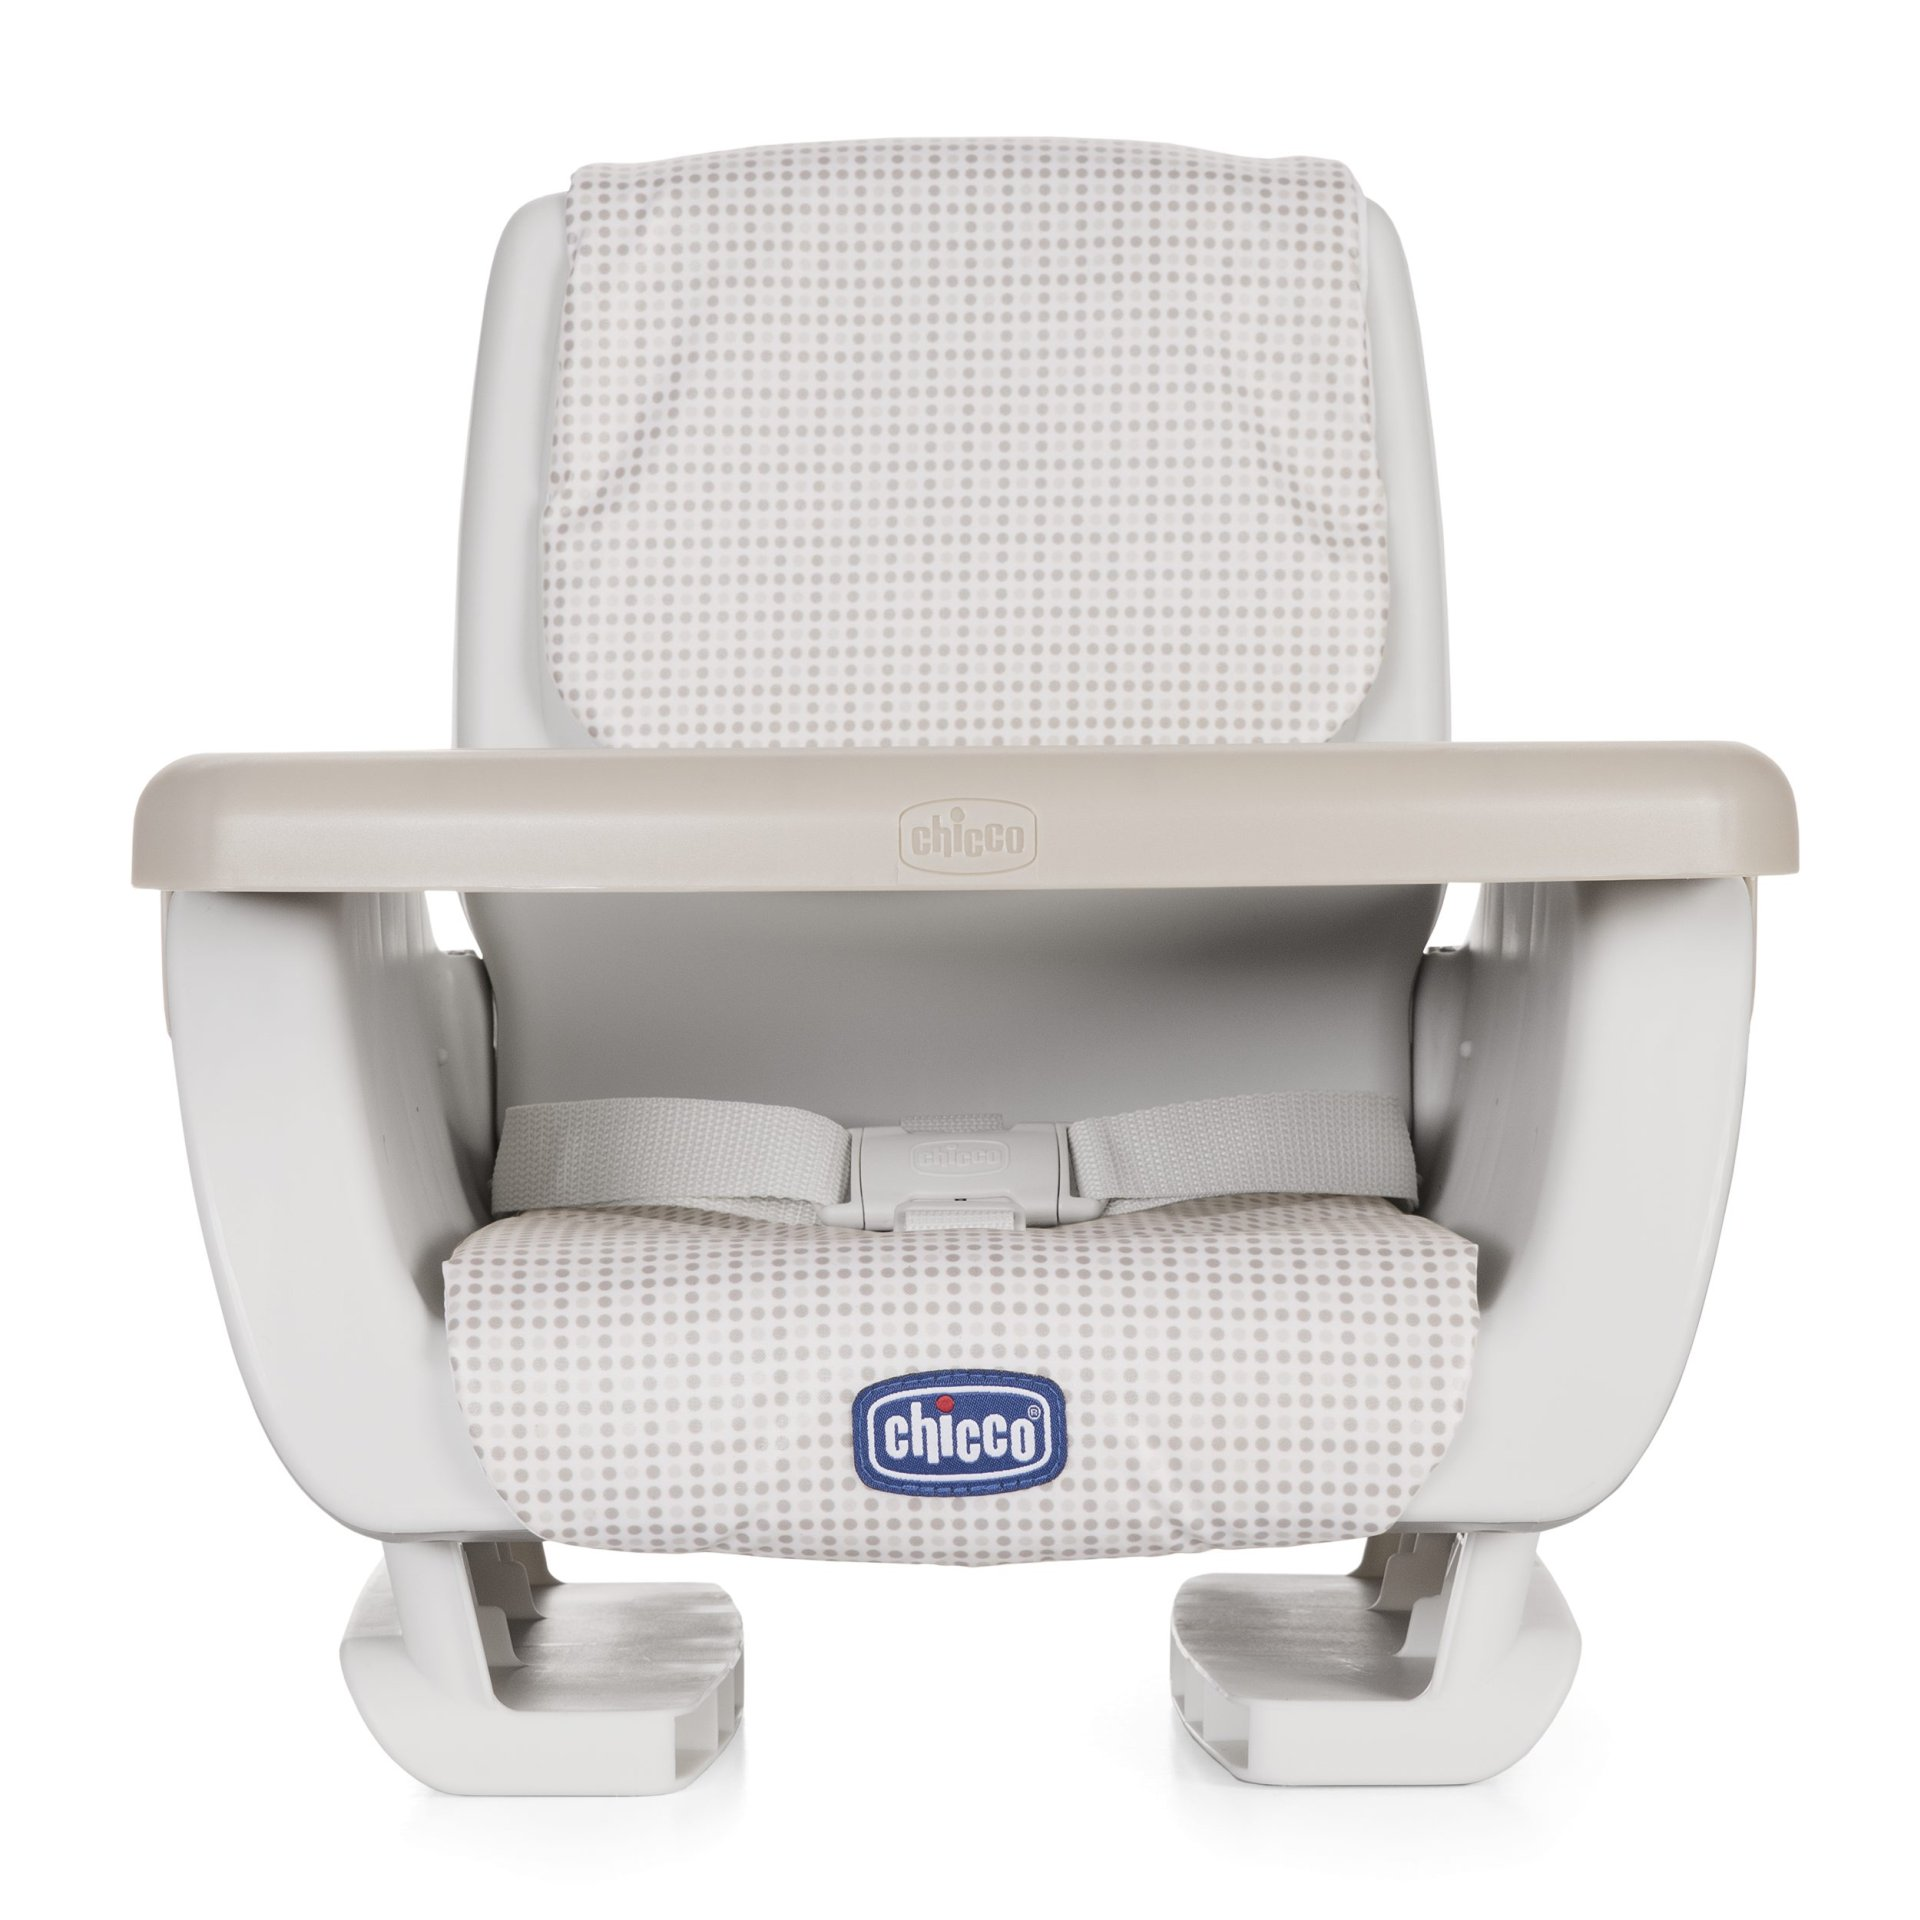 Chicco Booster Seat Mode 2018 Baby Elephant Buy at